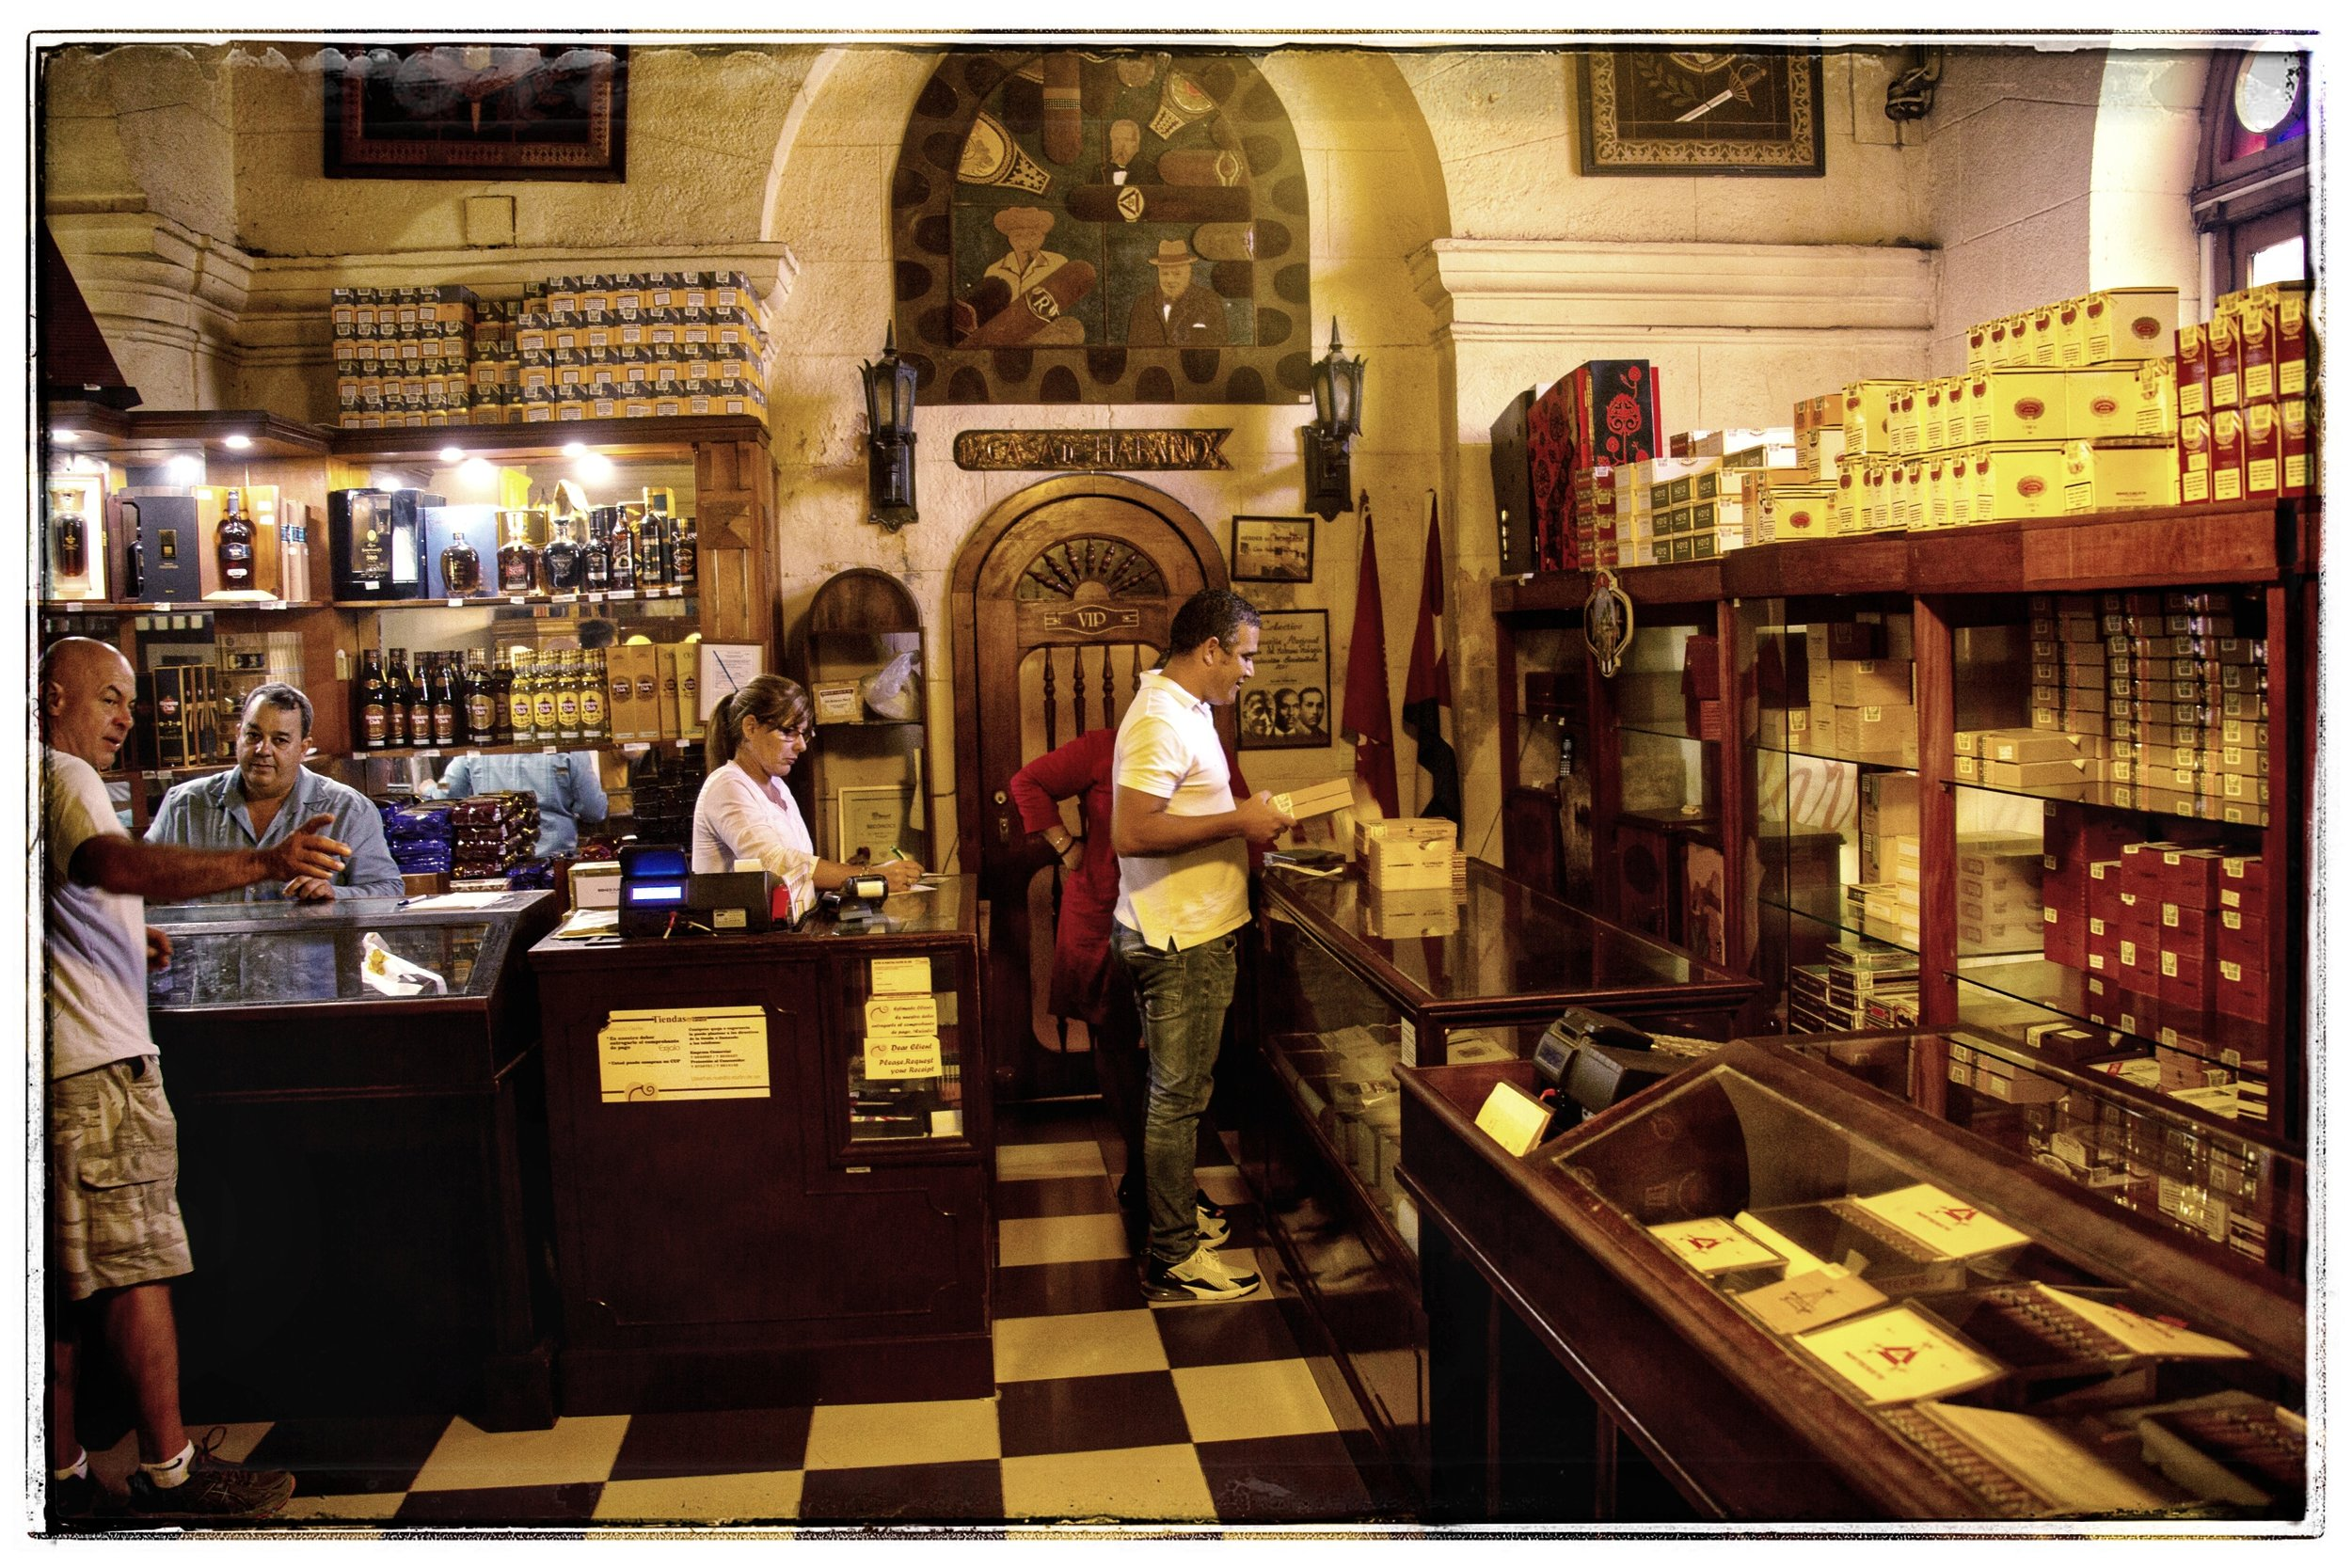 This is the government run Cigar store, where a Cubano was being sold for $145.